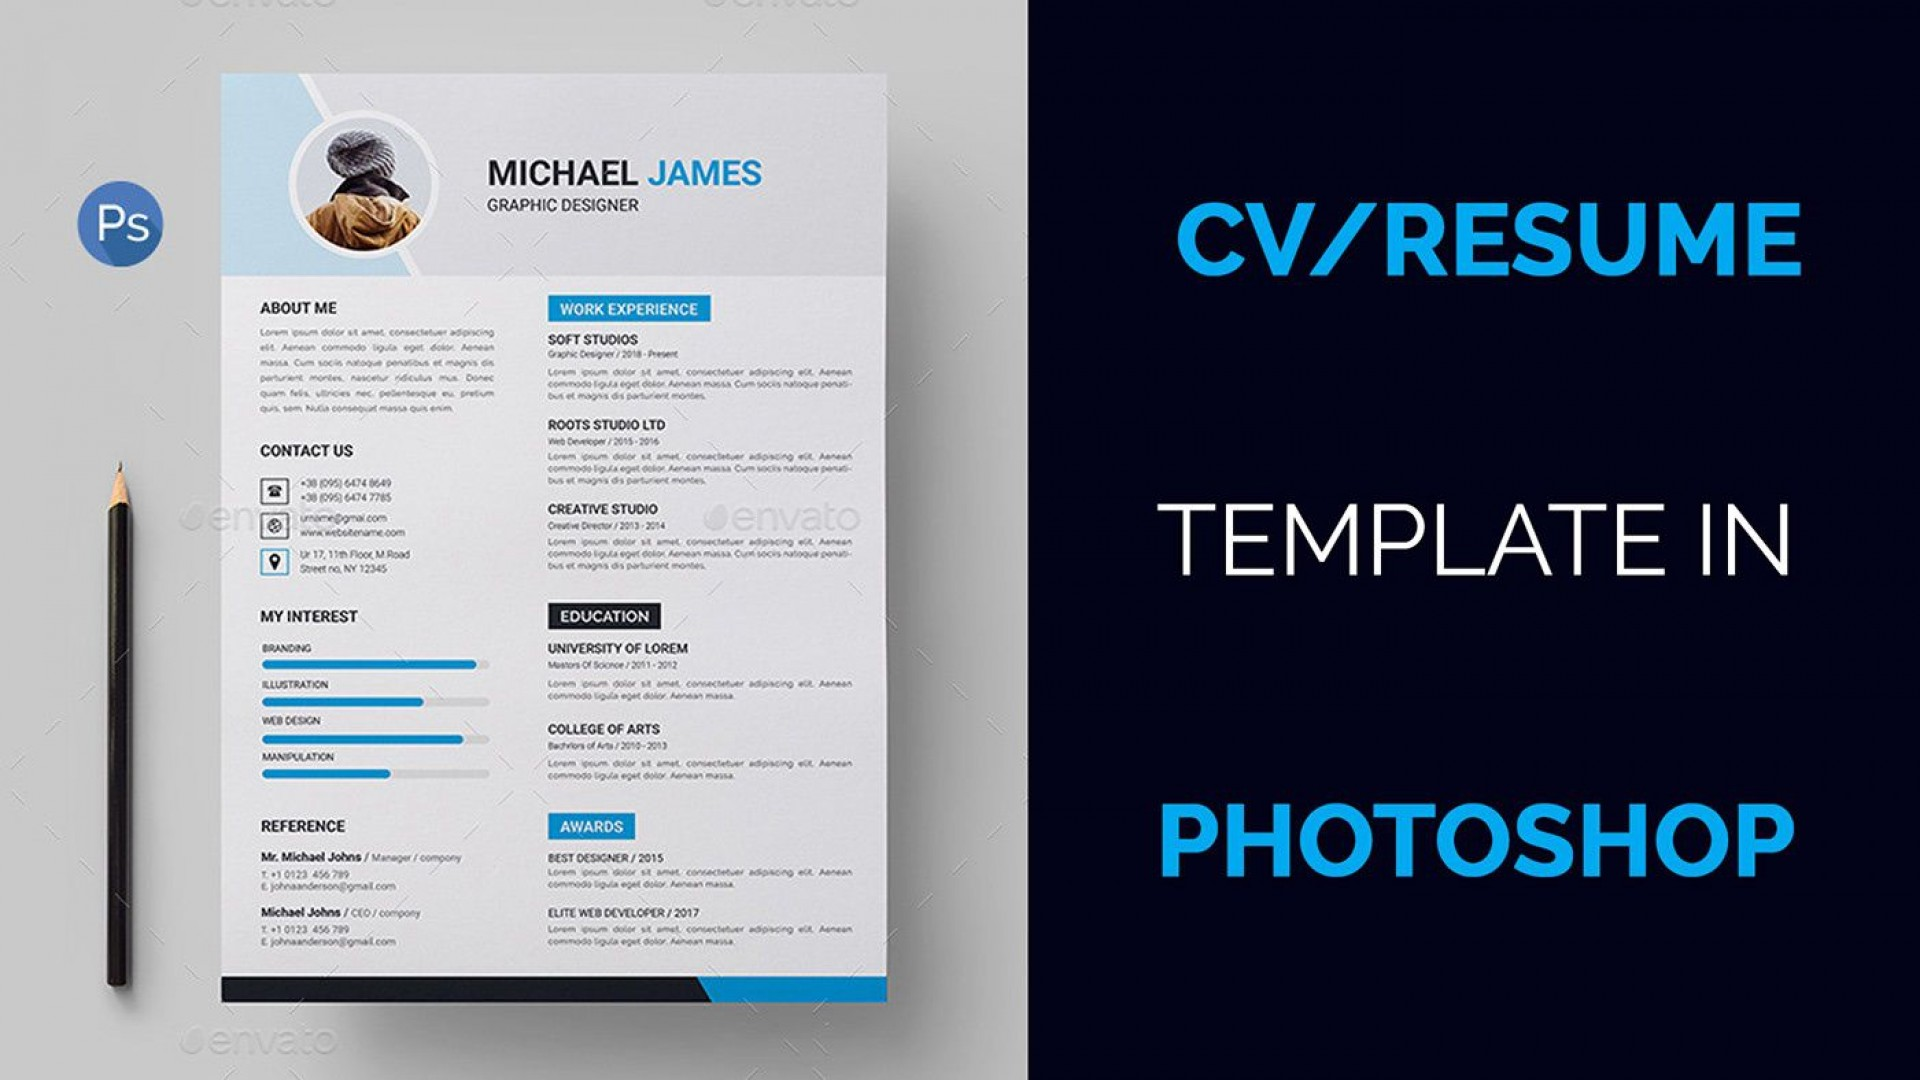 004 Marvelou How To Create A Resume Template In Photoshop Image 1920